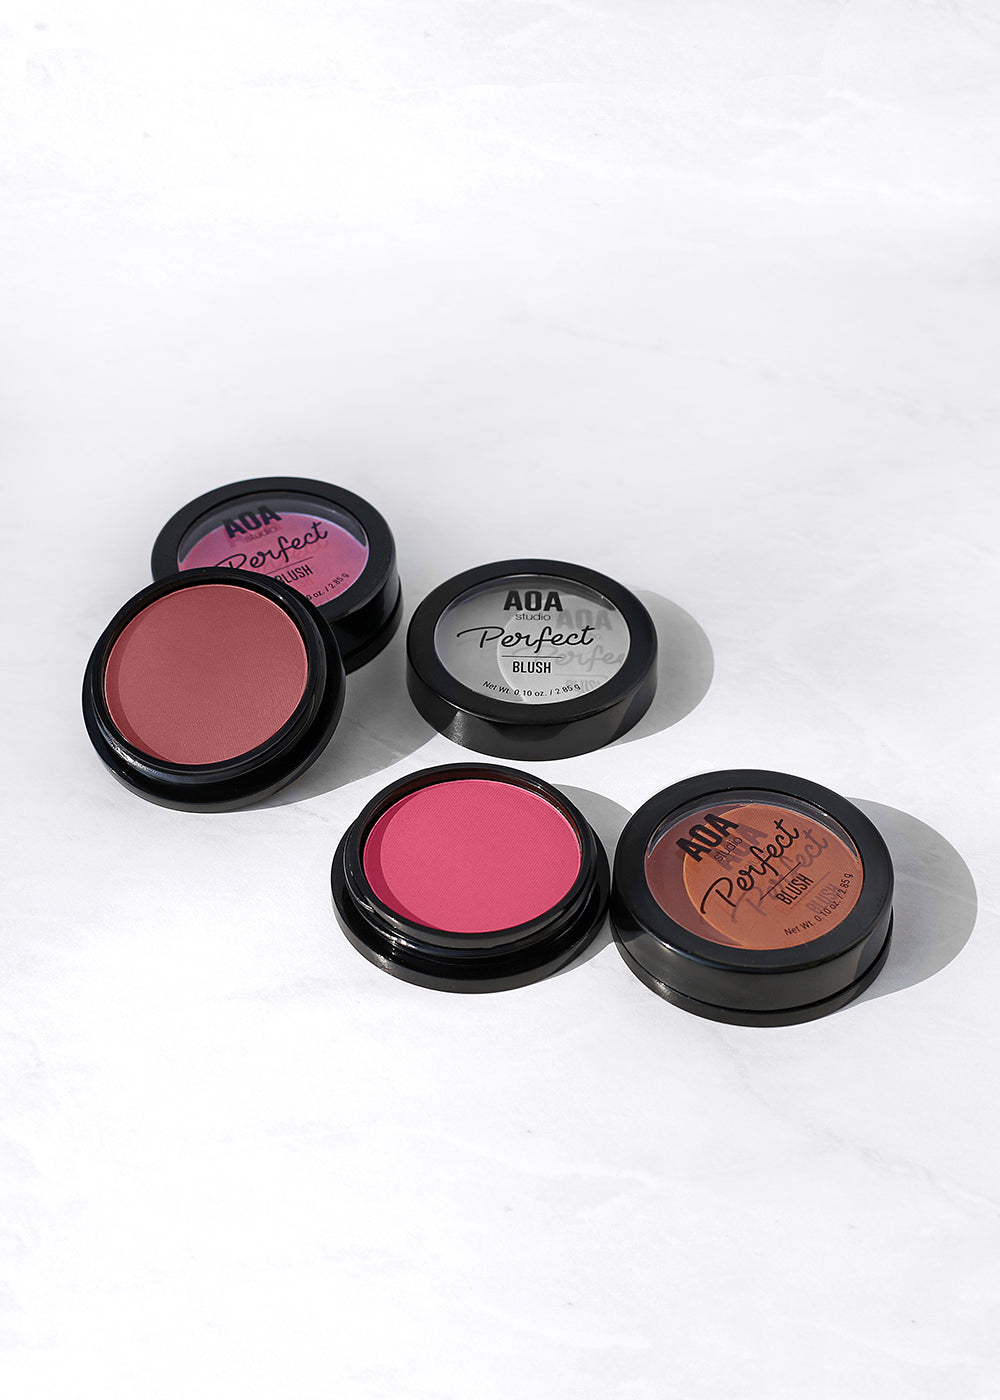 AOA Perfect Powder Blush - Auburn